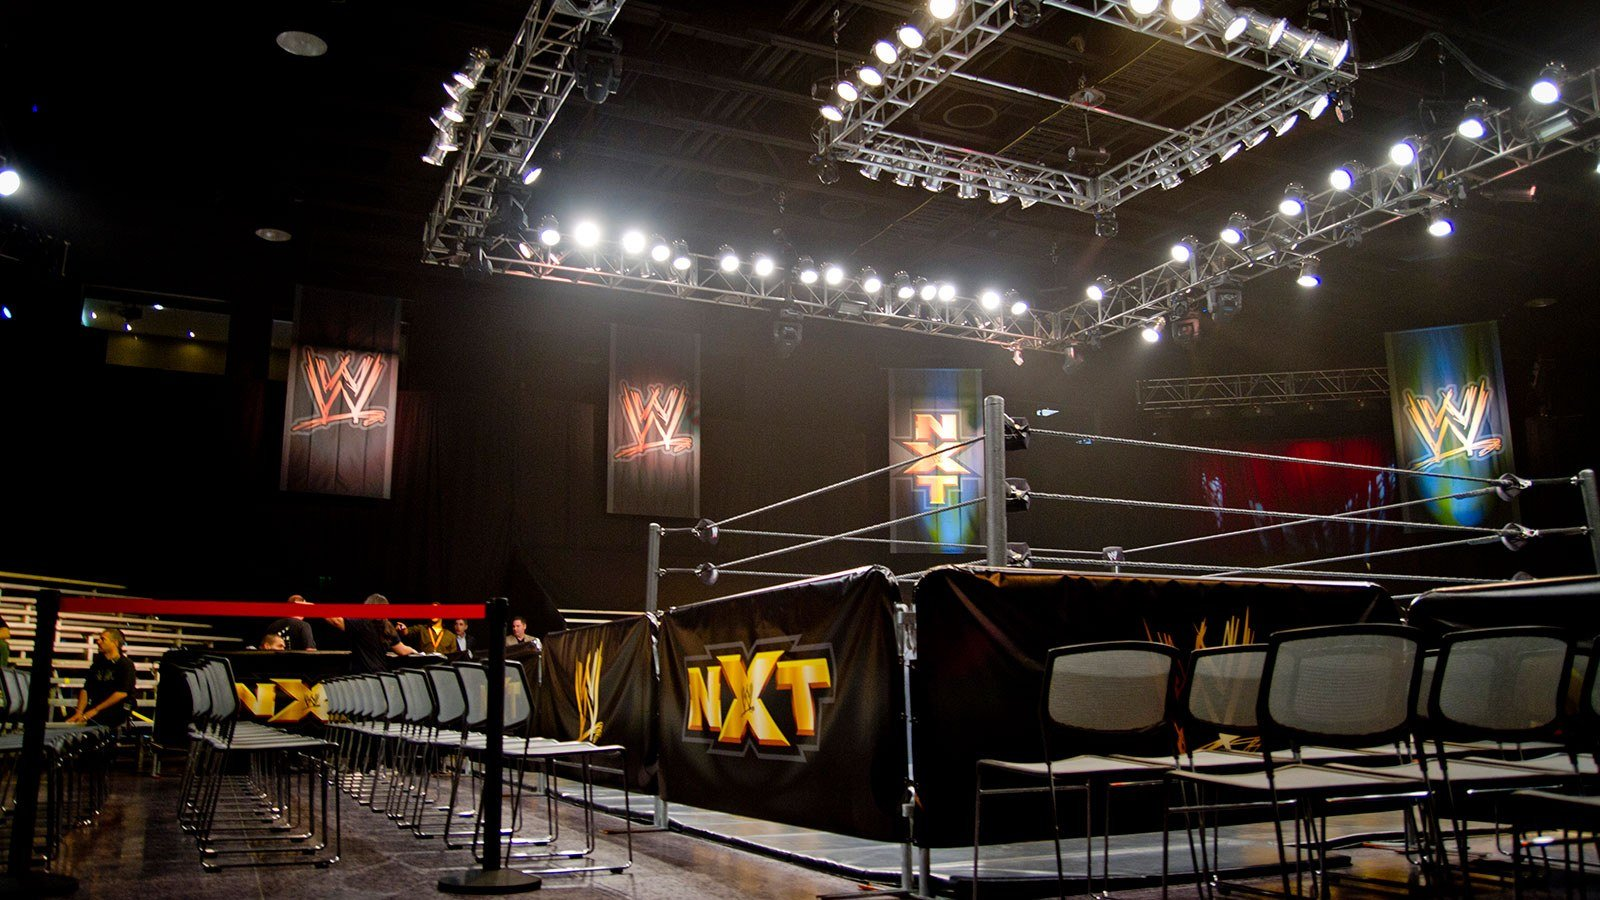 Student Group Helping WWE with 'NXT' Social Media Initiatives - Hero image